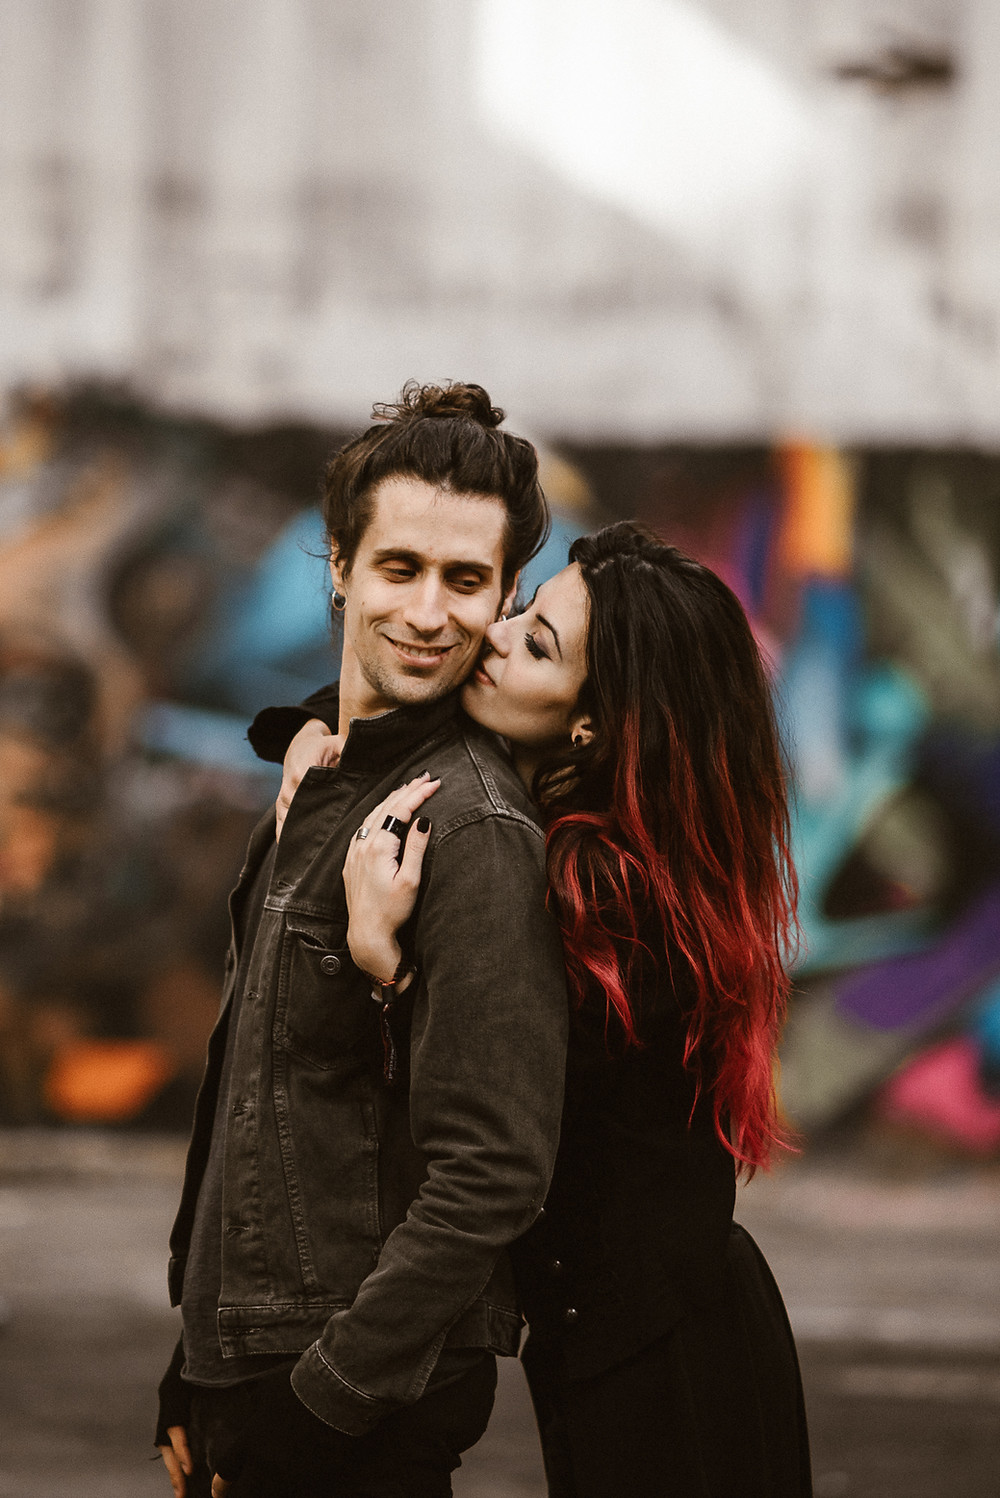 industrial pre-wedding shoot with this rad couple by The Wedding Fox International Wedding Photography